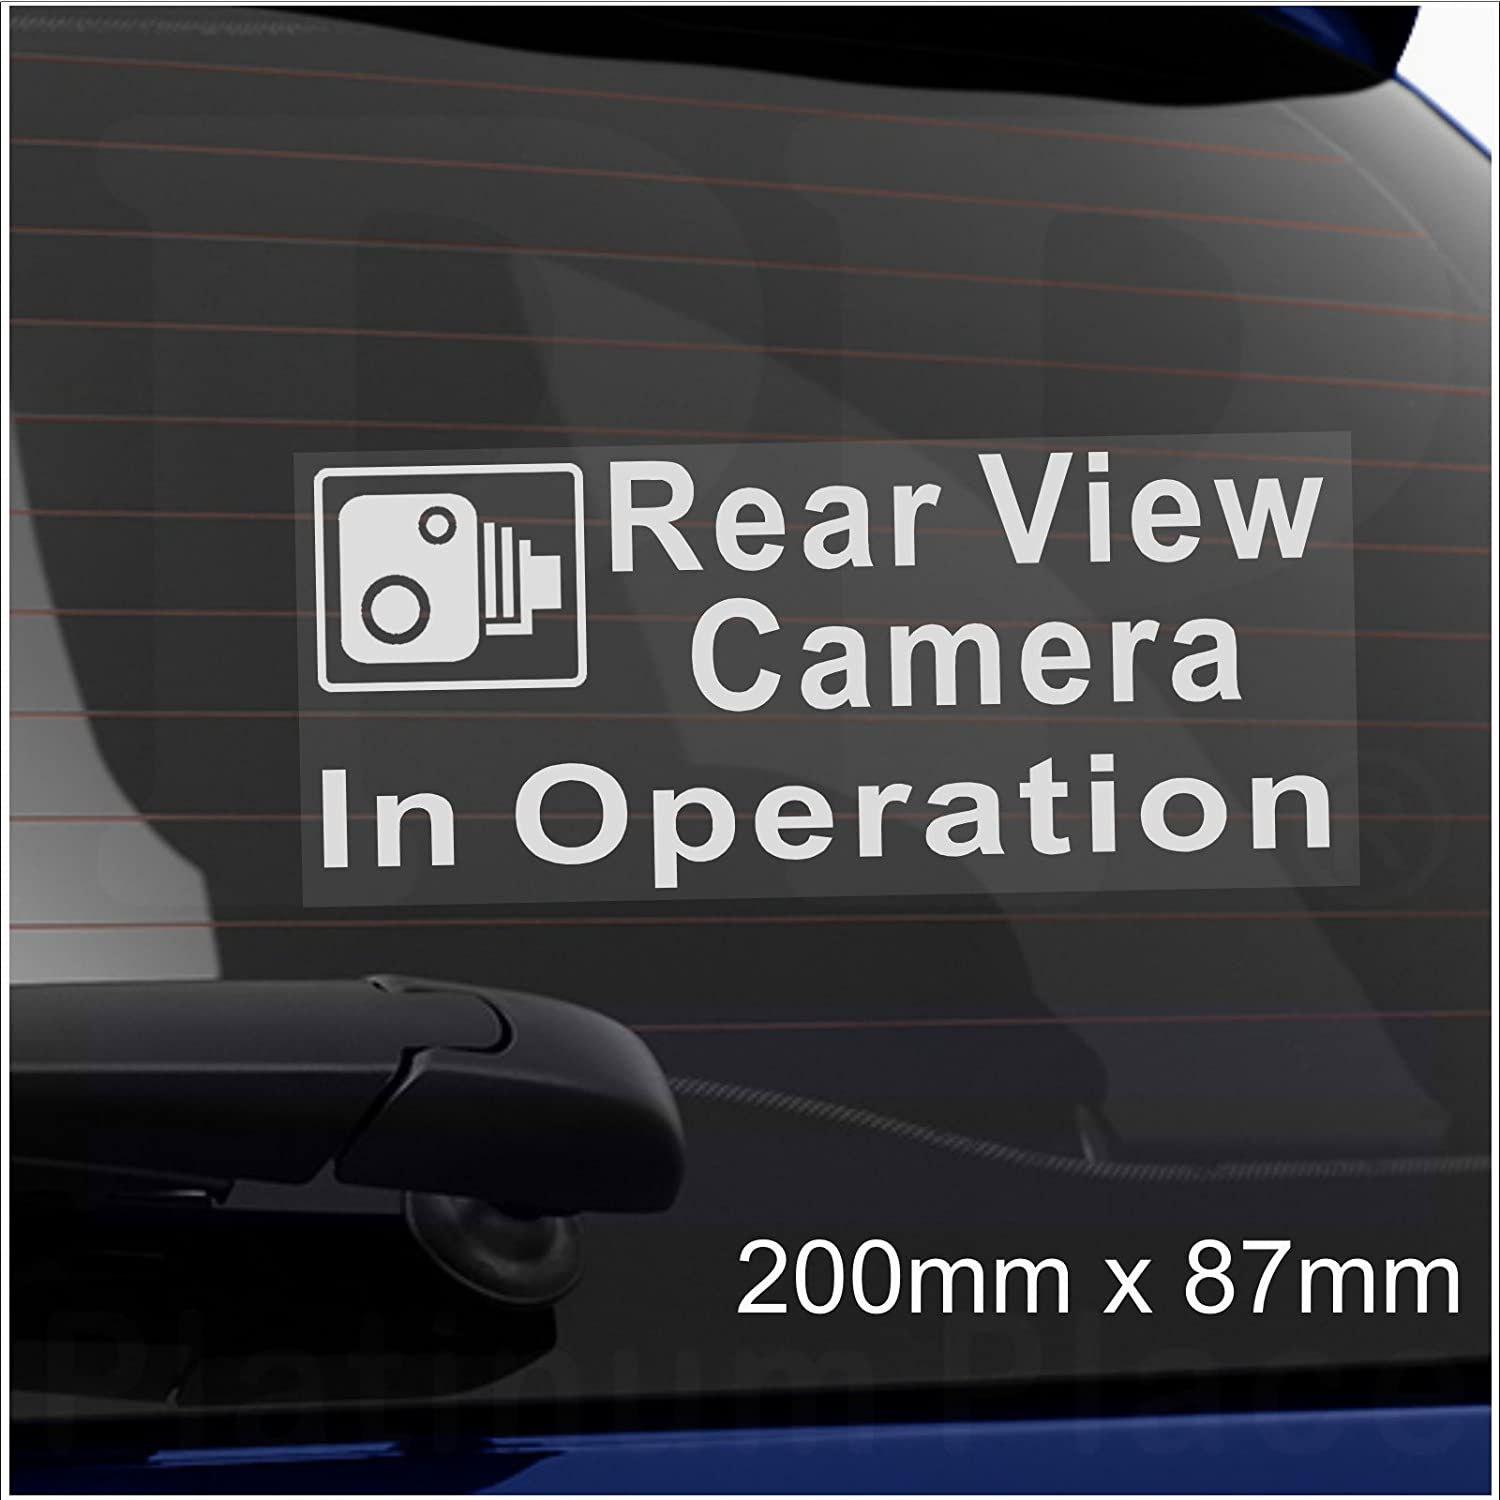 Platinum Place 1 x Rear View Camera In Operation-Window CCTV Sticker-200mm-Security Sign-Car,Van,Lorry,Truck,Taxi,Bus,Mini Cab,Minicab-Dashcam